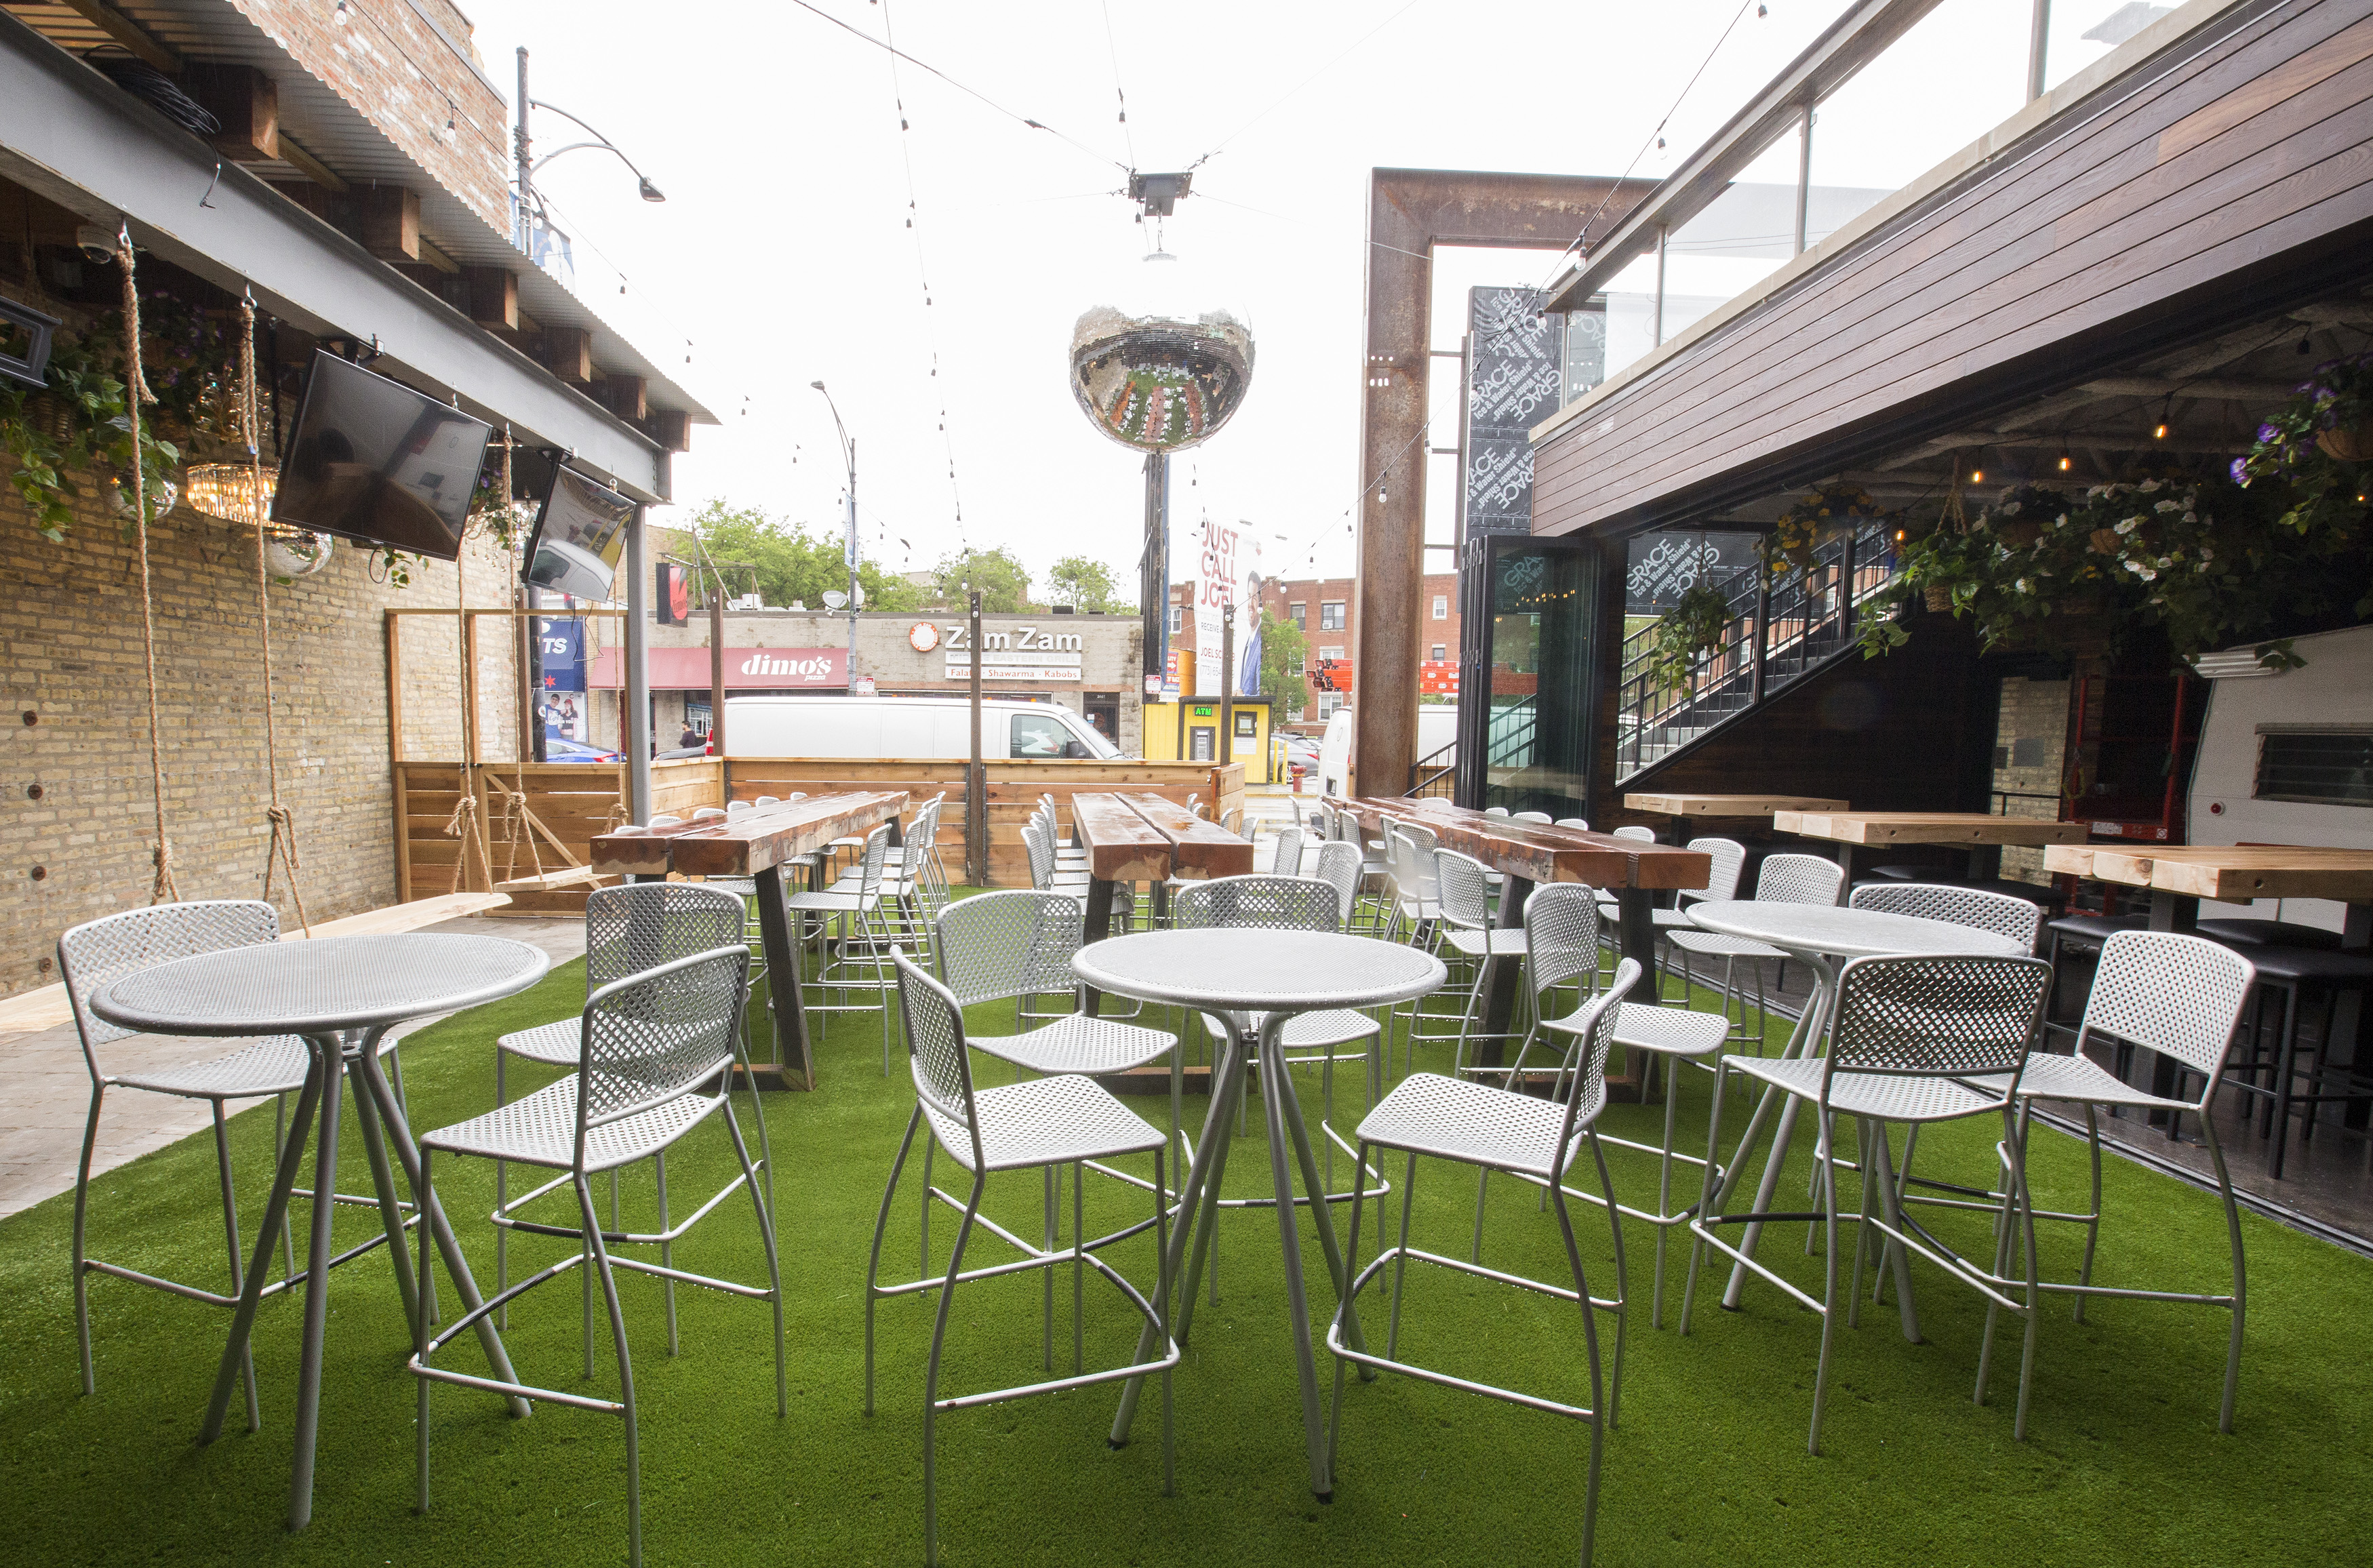 A patio with several metal tables and chairs standing on artificial green turf.